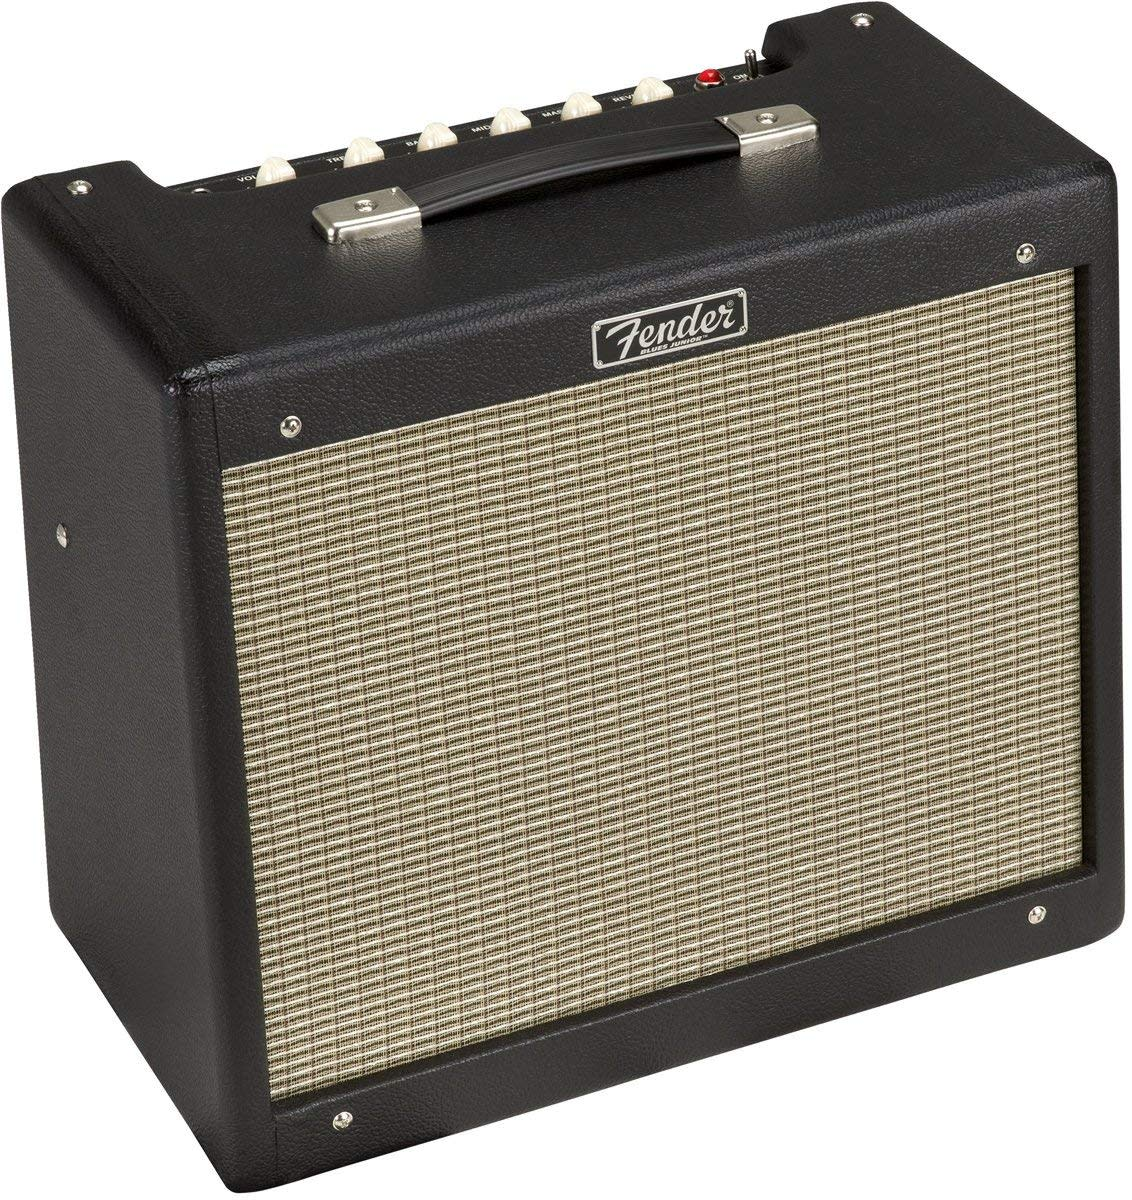 The Fender Blues Junior is a low-wattage tube amp that's perfect for jamming at home.